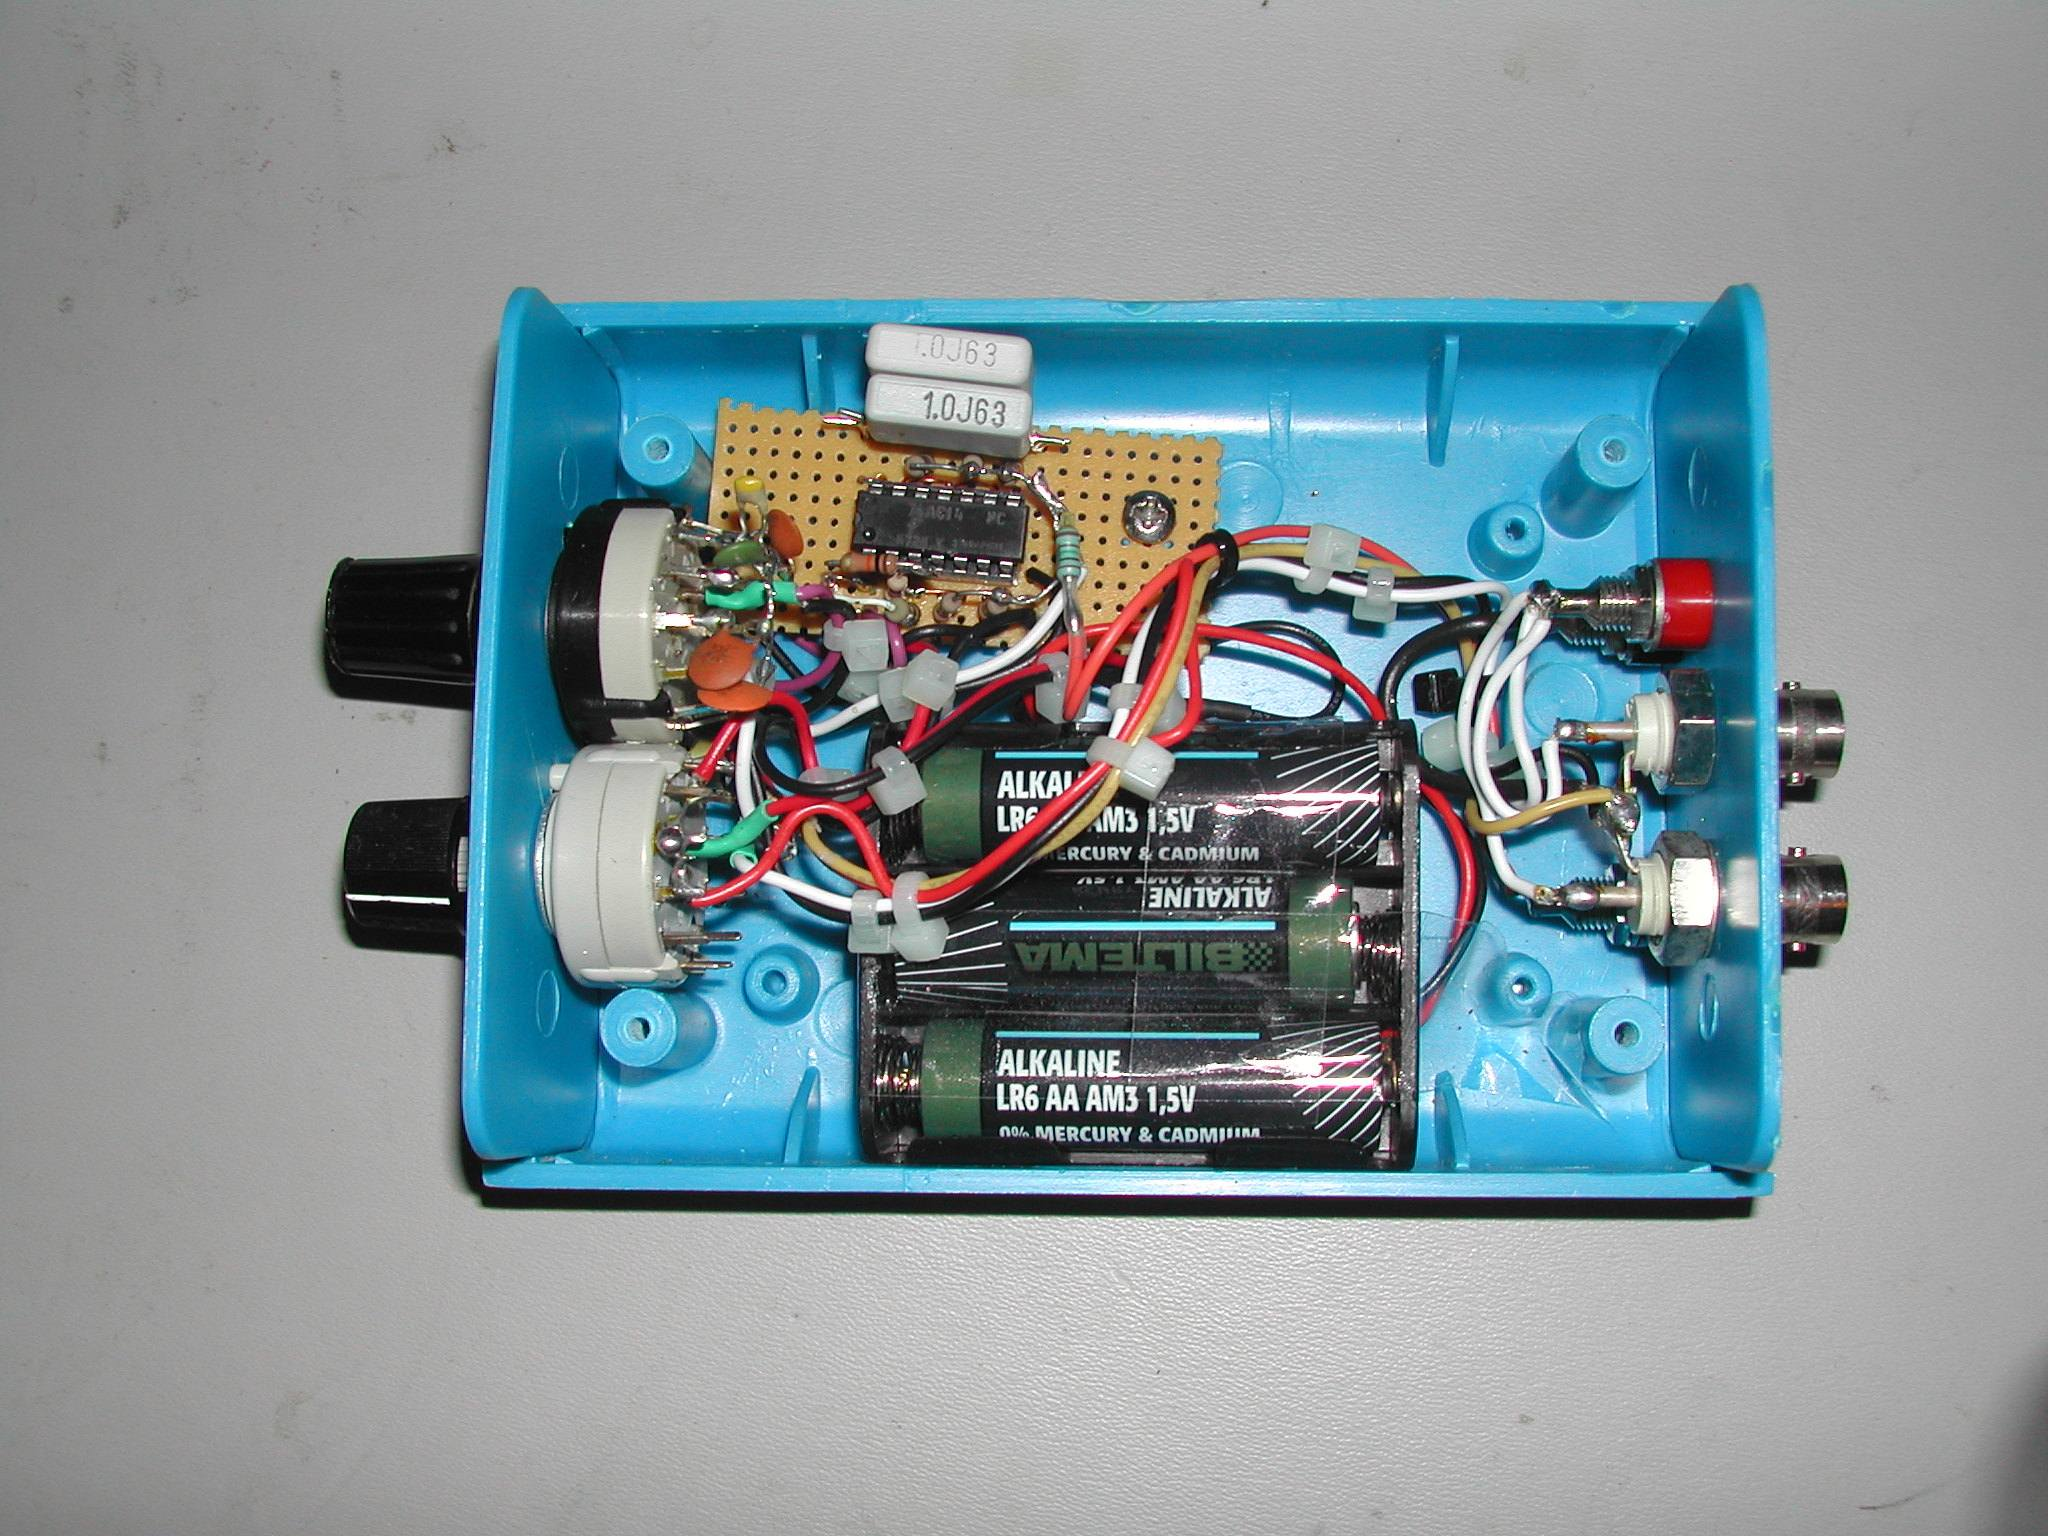 Tdr Circuit Capacitor Tester Diagram Electronic Circuits Inside